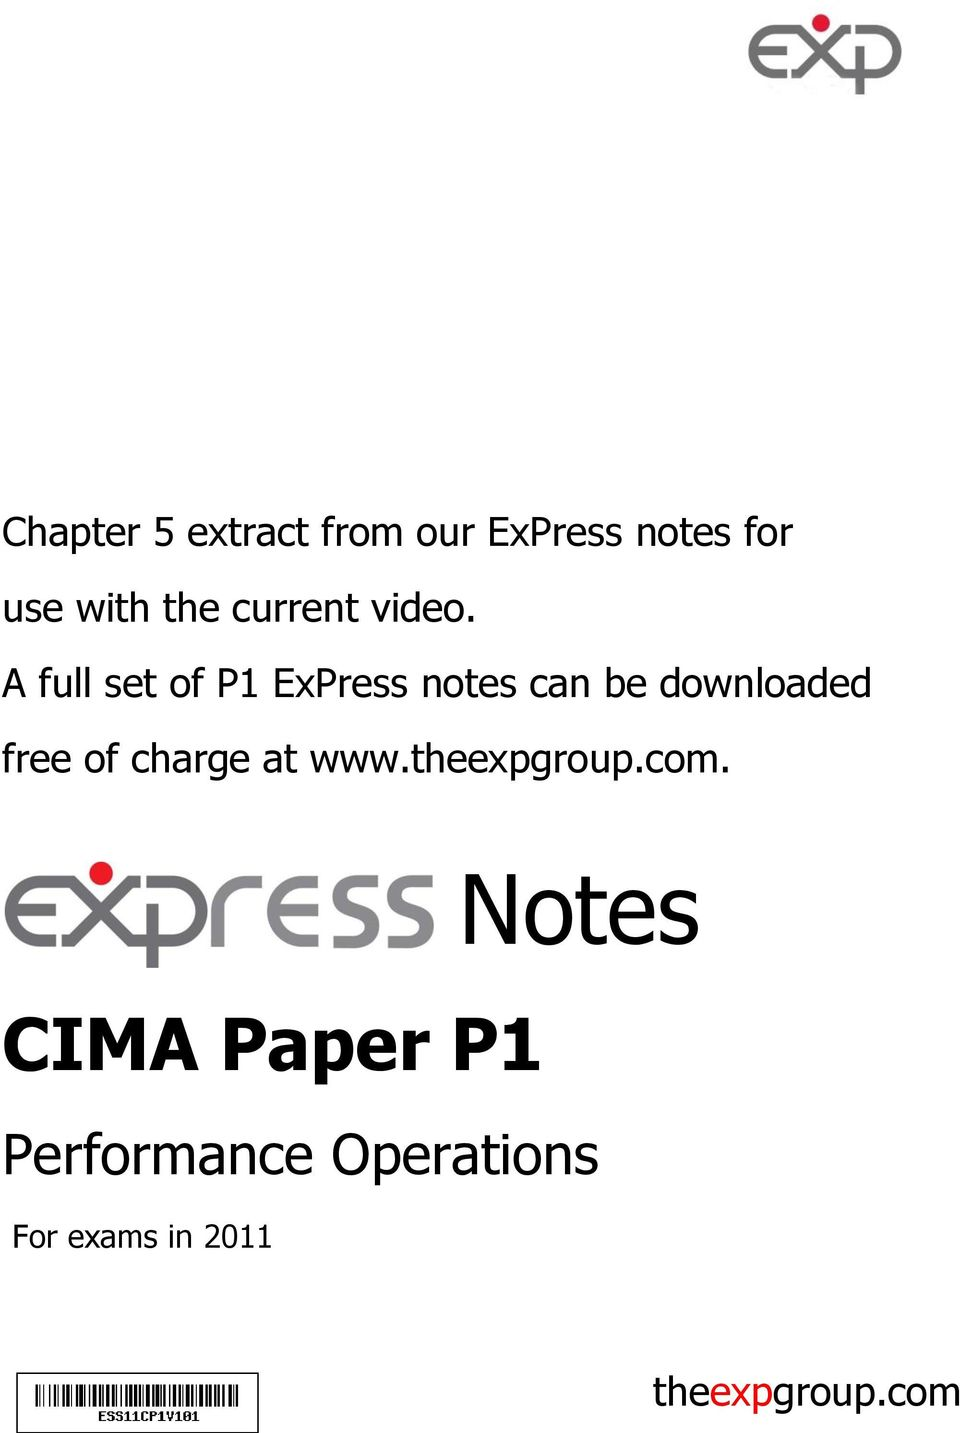 A full set of P1 ExPress notes can be downloaded